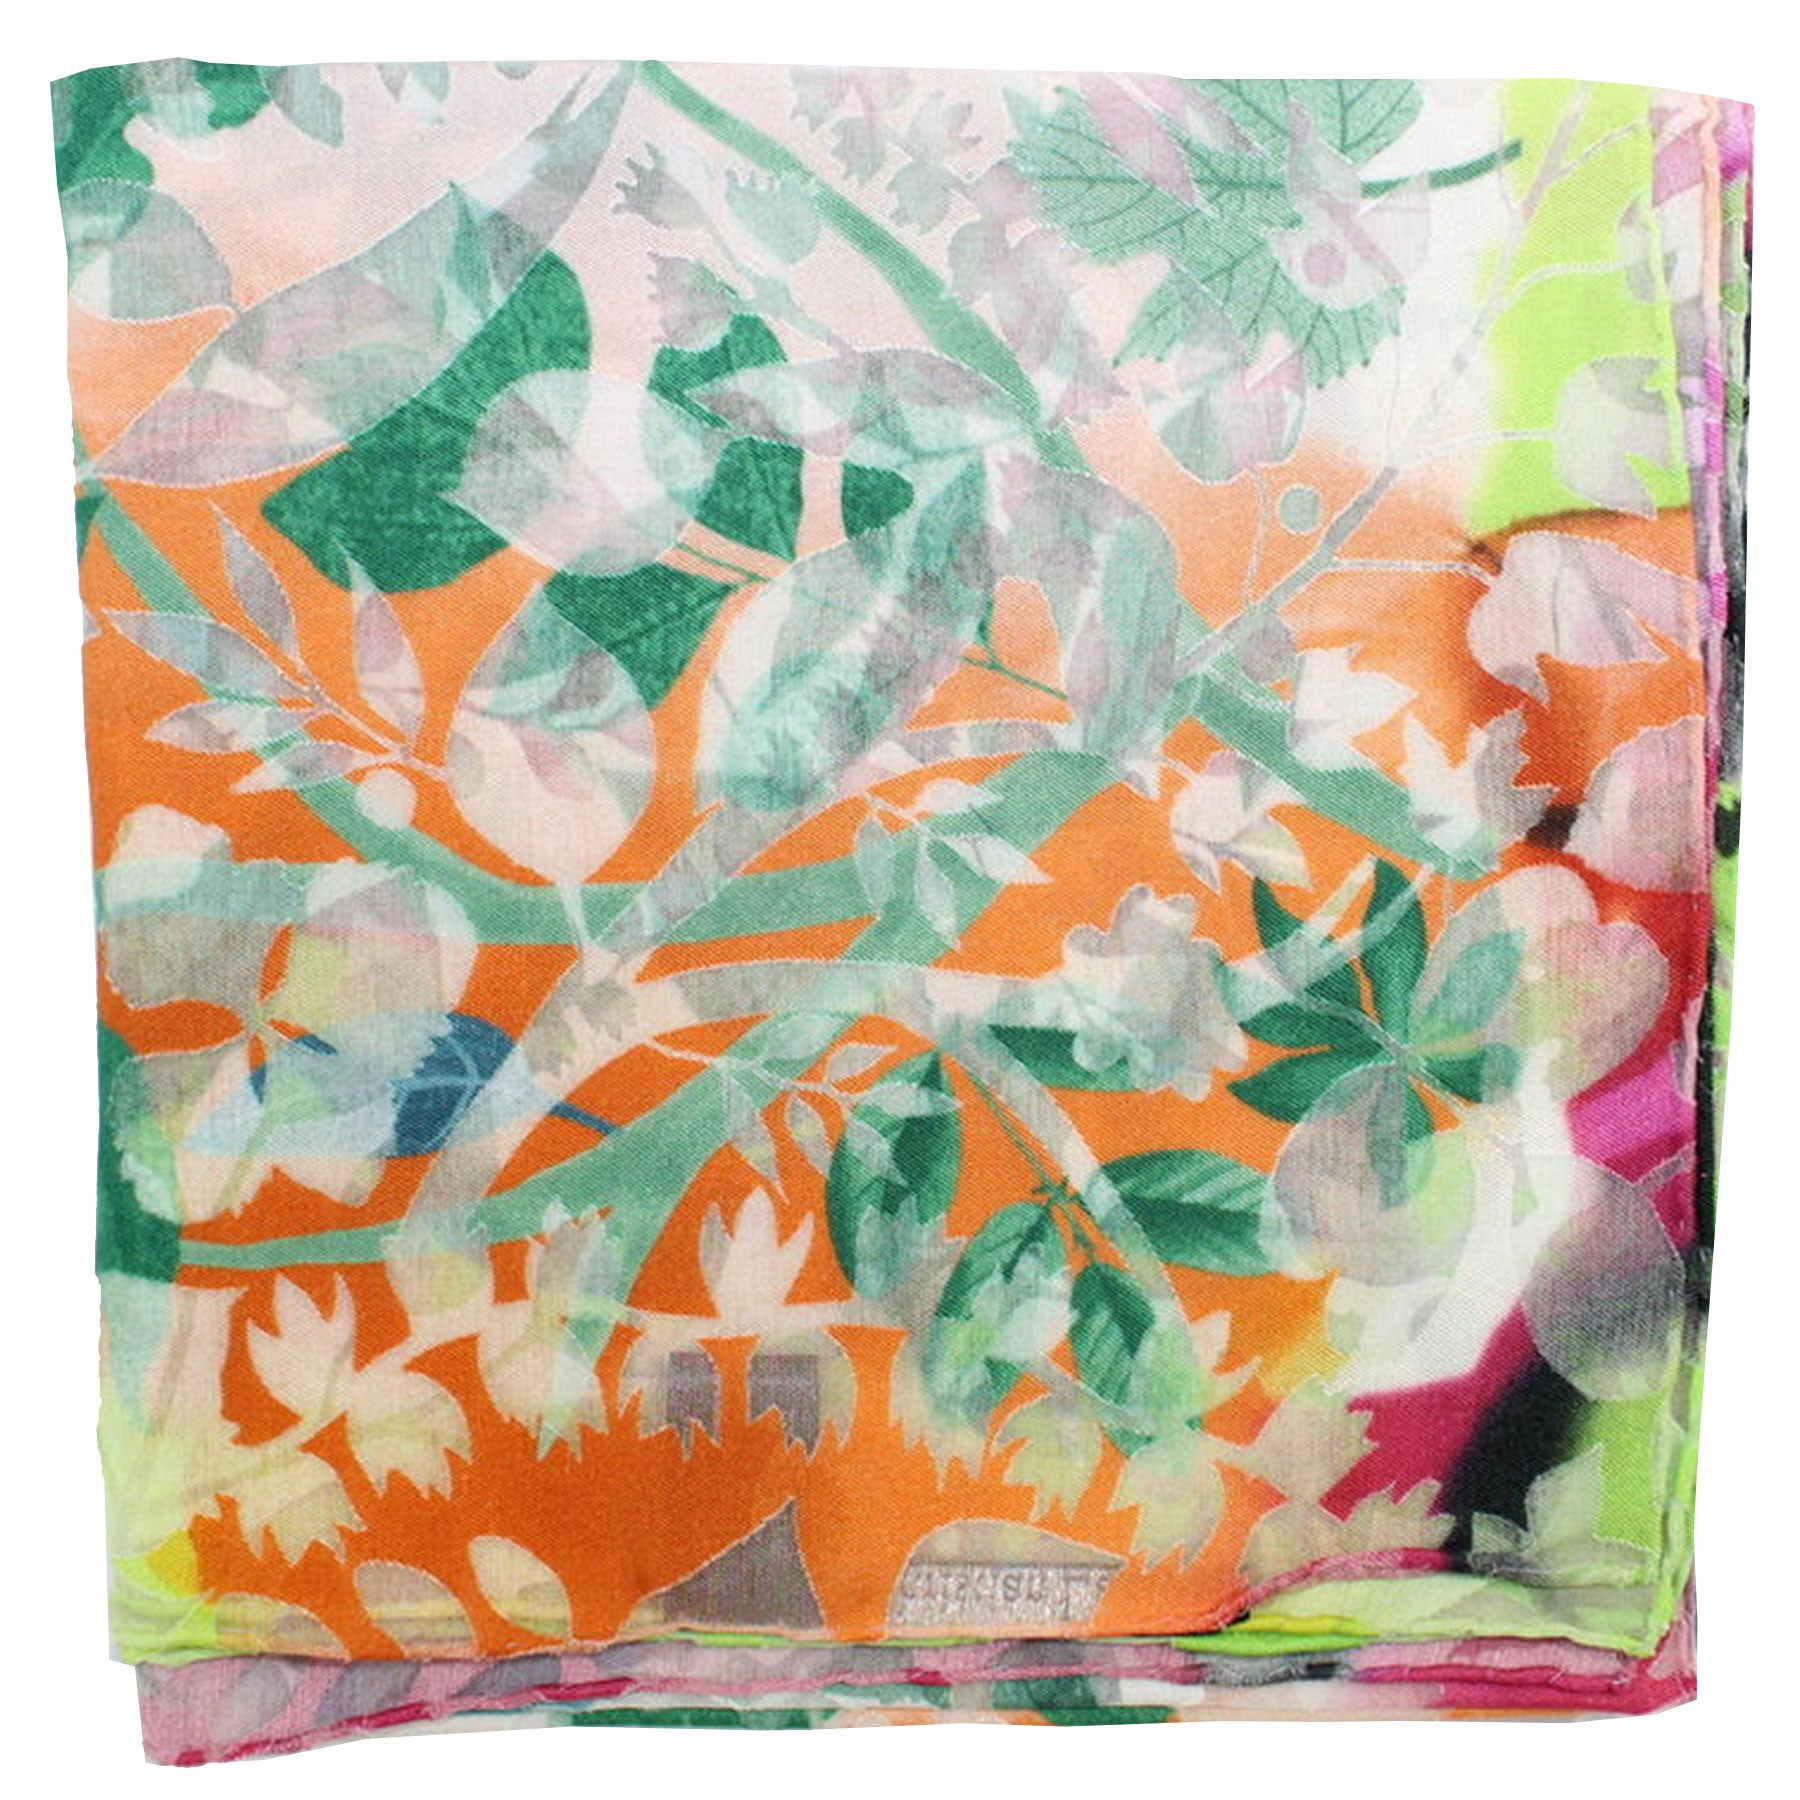 Christian Lacroix Scarf 20 Ans Design Orange Lime Lavender Floral - Large Twill Silk Square Scarf